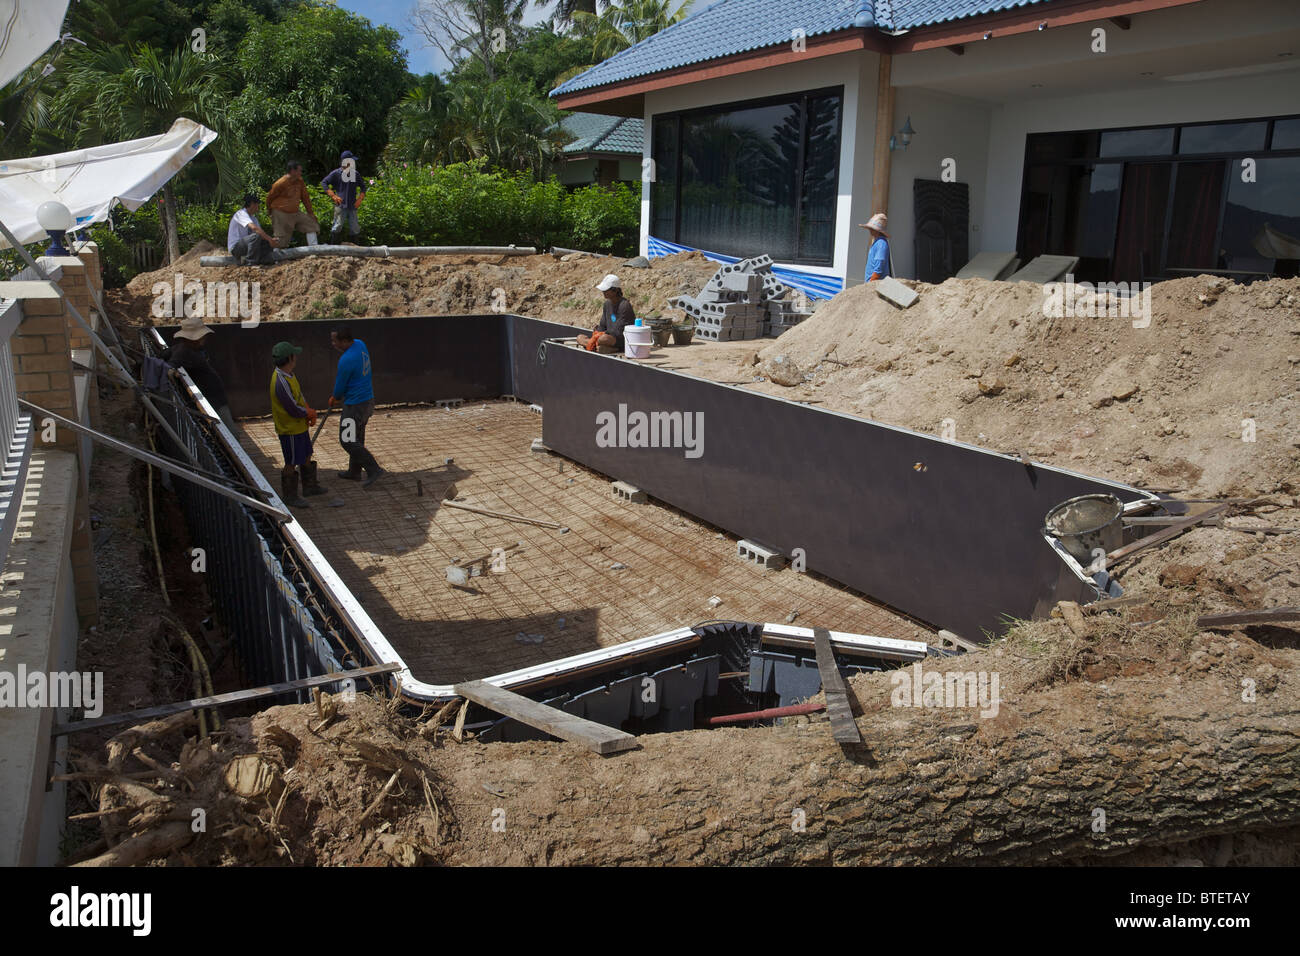 A swimming pool being built in phuket thailand stock for Built in swimming pool